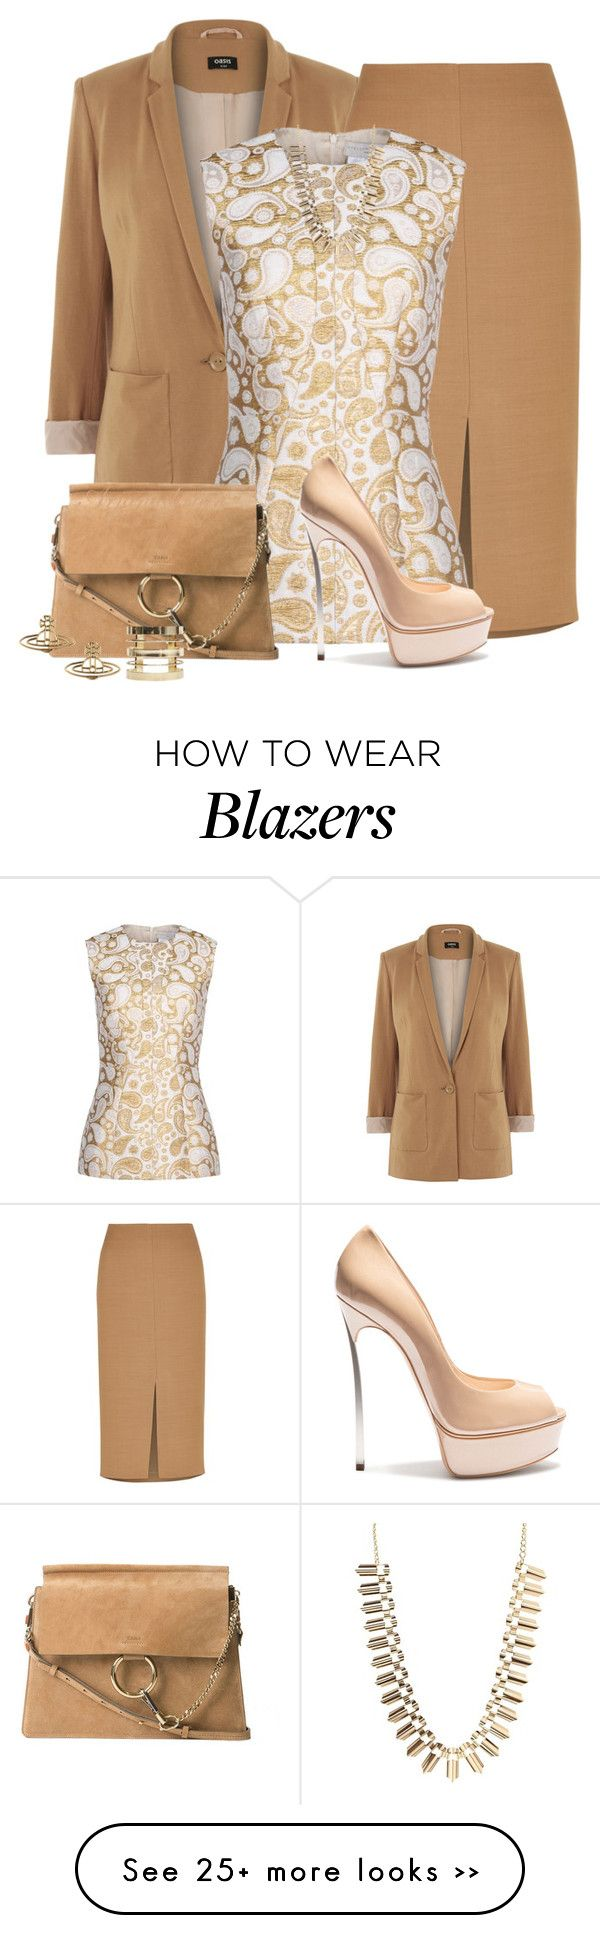 """""""STELLA MCCARTNEY BLOUSE"""" by arjanadesign on Polyvore featuring Oasis, Jaeger, STELLA McCARTNEY, Casadei, Chloé, Charlotte Russe and Wet Seal"""